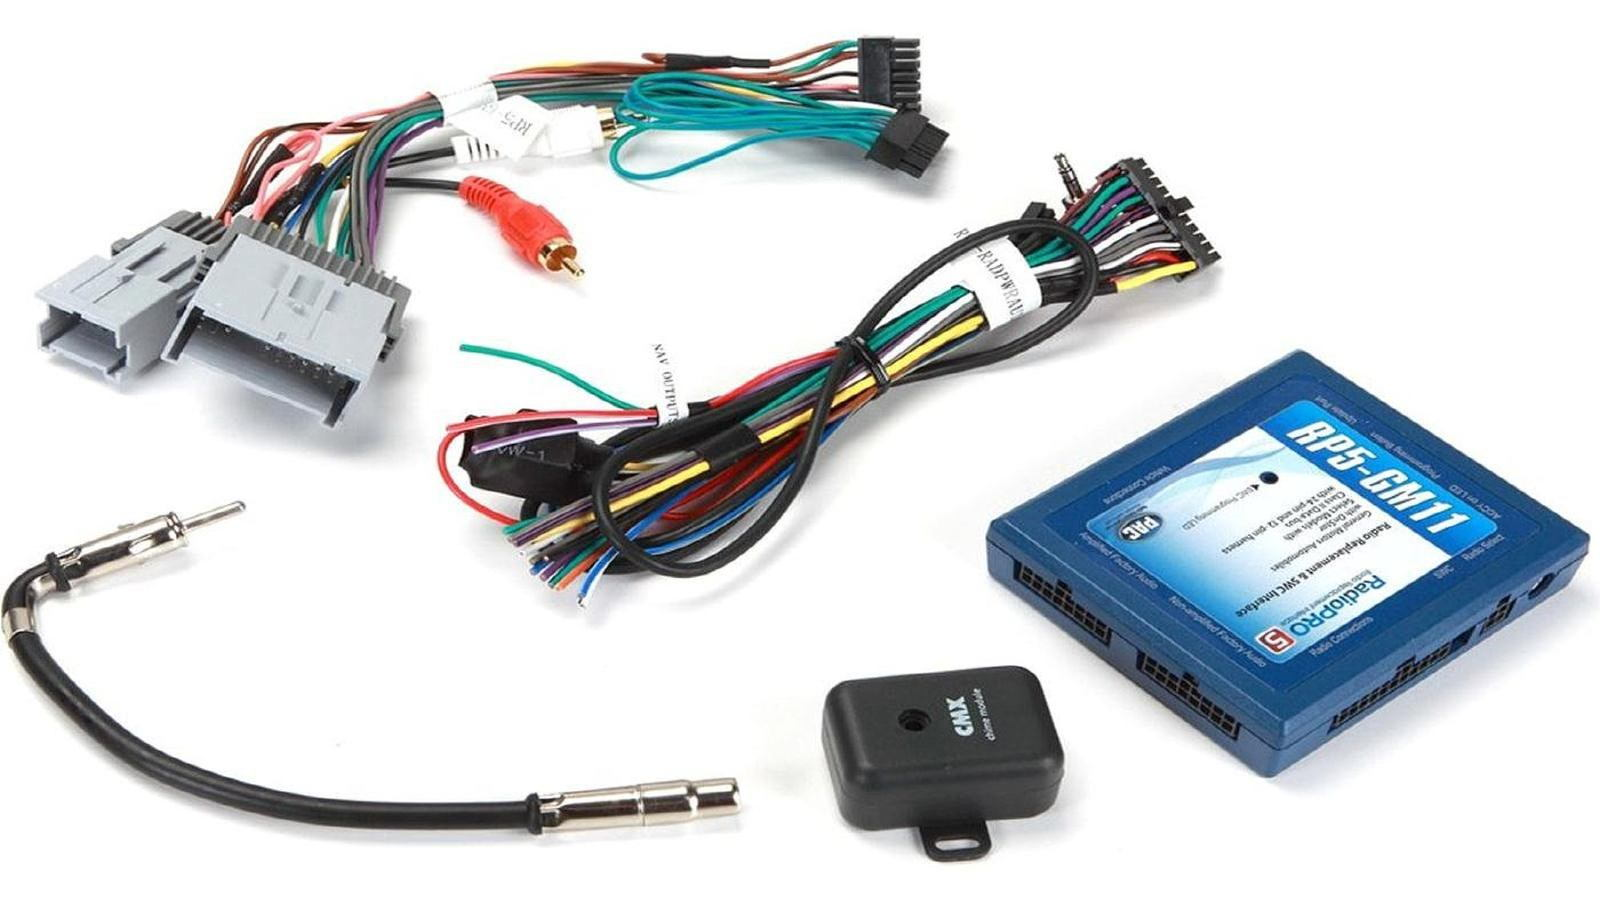 2006 subaru sti car stereo wiring diagram wiring diagram and hernes 2006 subaru impreza stereo wiring harness diagram and hernes